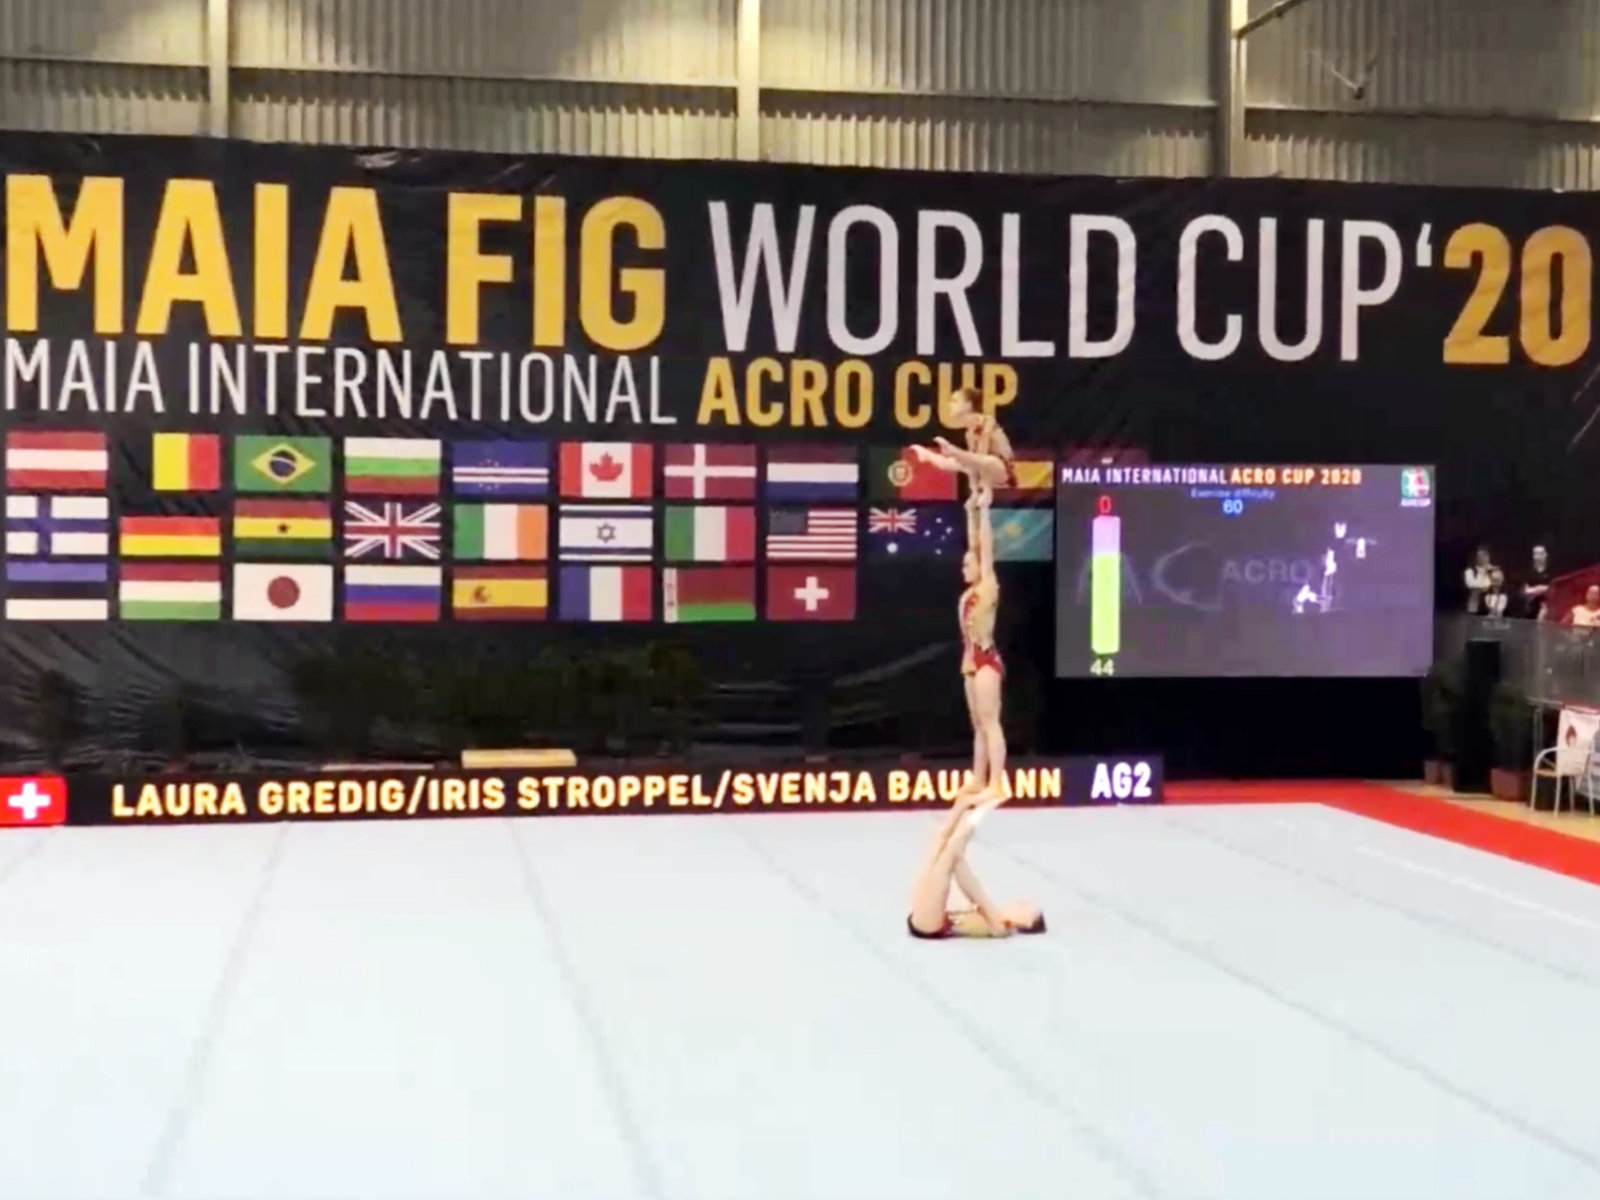 Maia International Acro Cup 2020 – Rückblick